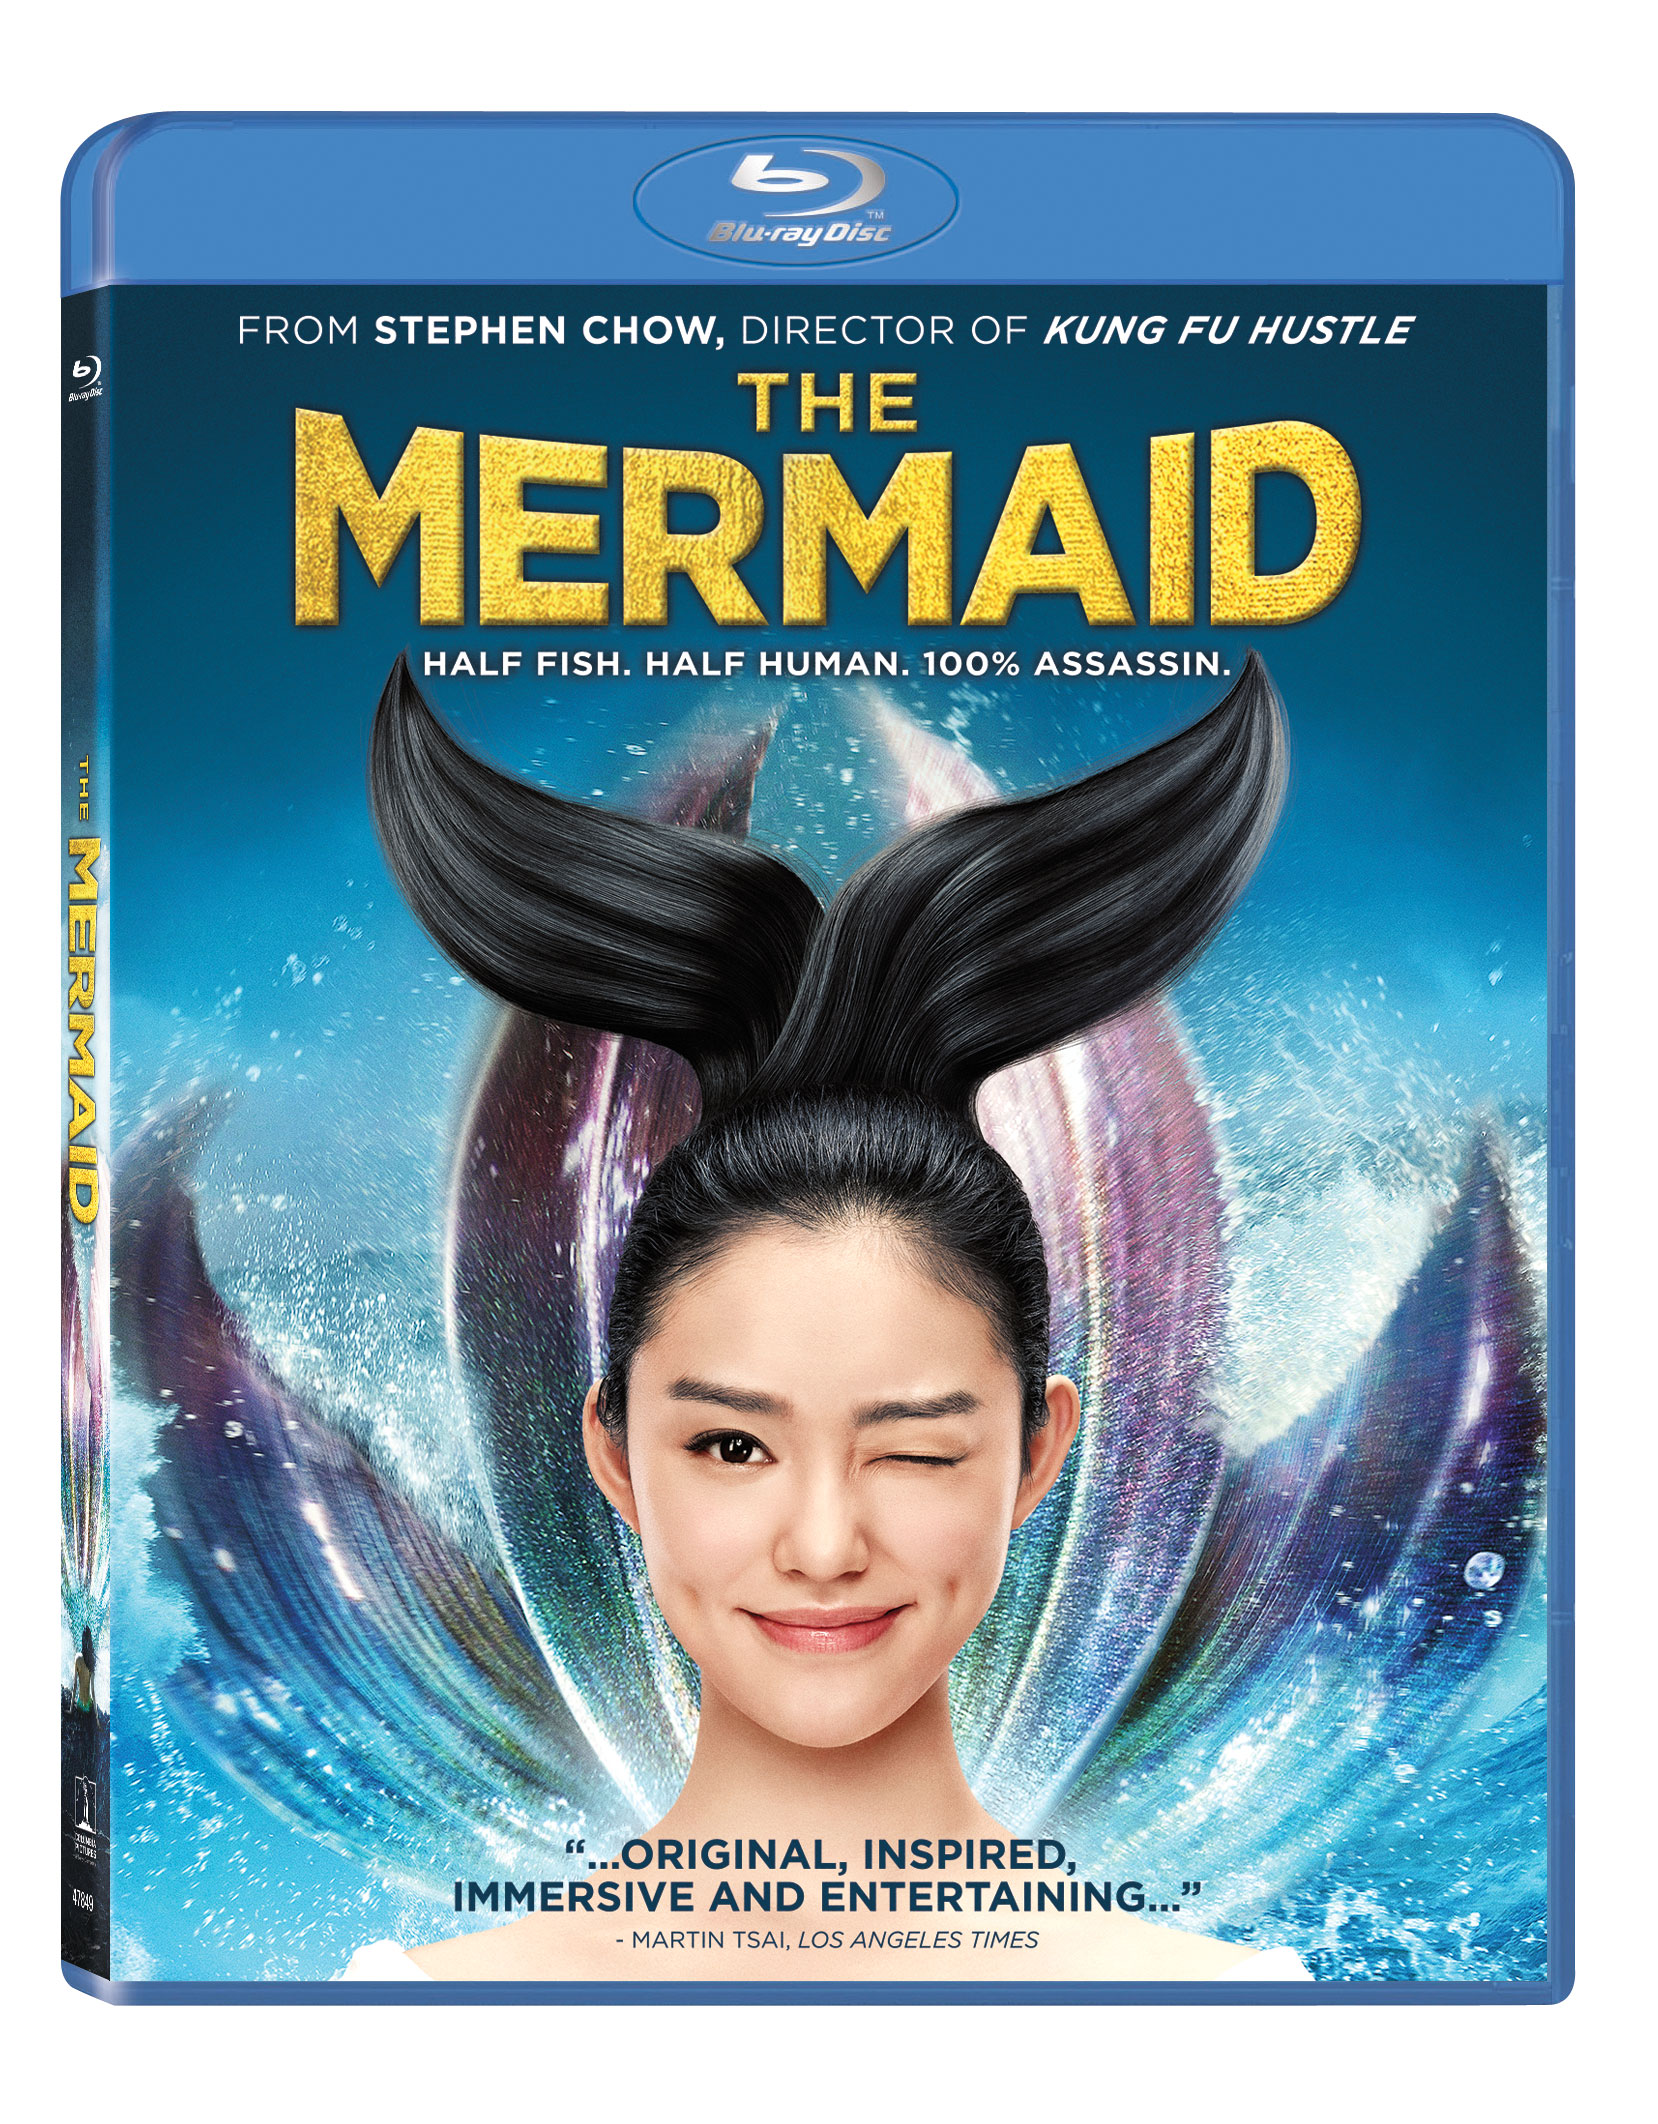 The Mermaid Blu-ray Review